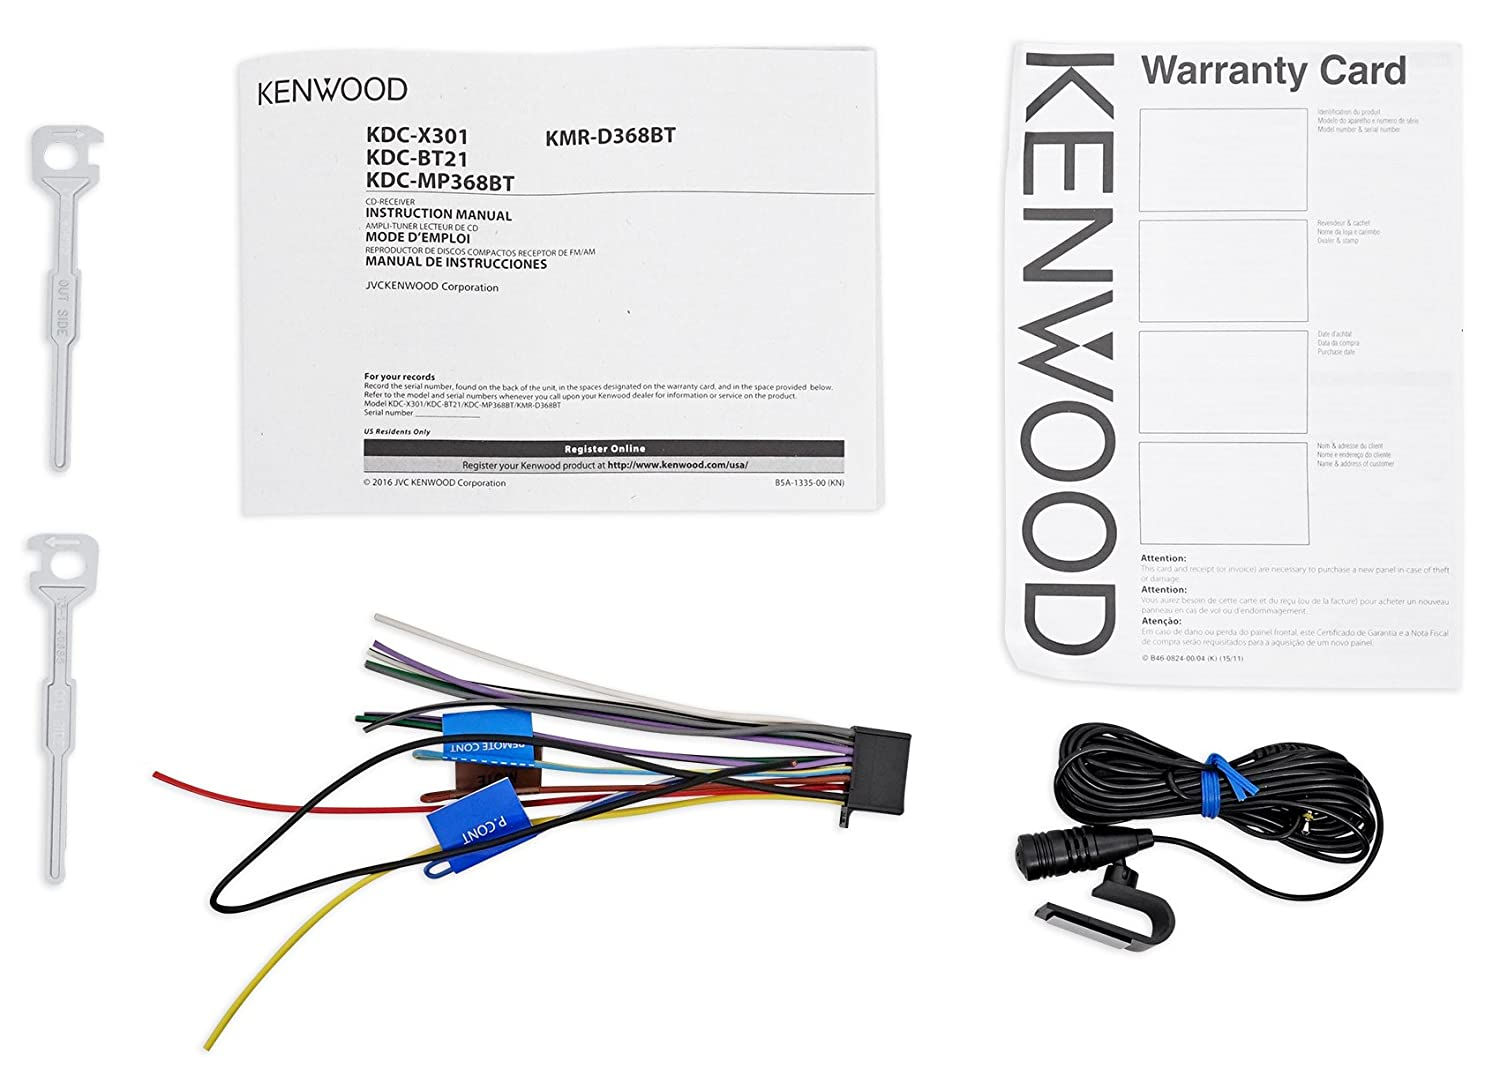 Kenwood Cd Player Bluetooth Receiver Ipod Android Wiring Harness Back Pandora For 03 07 Honda Accord Car Electronics